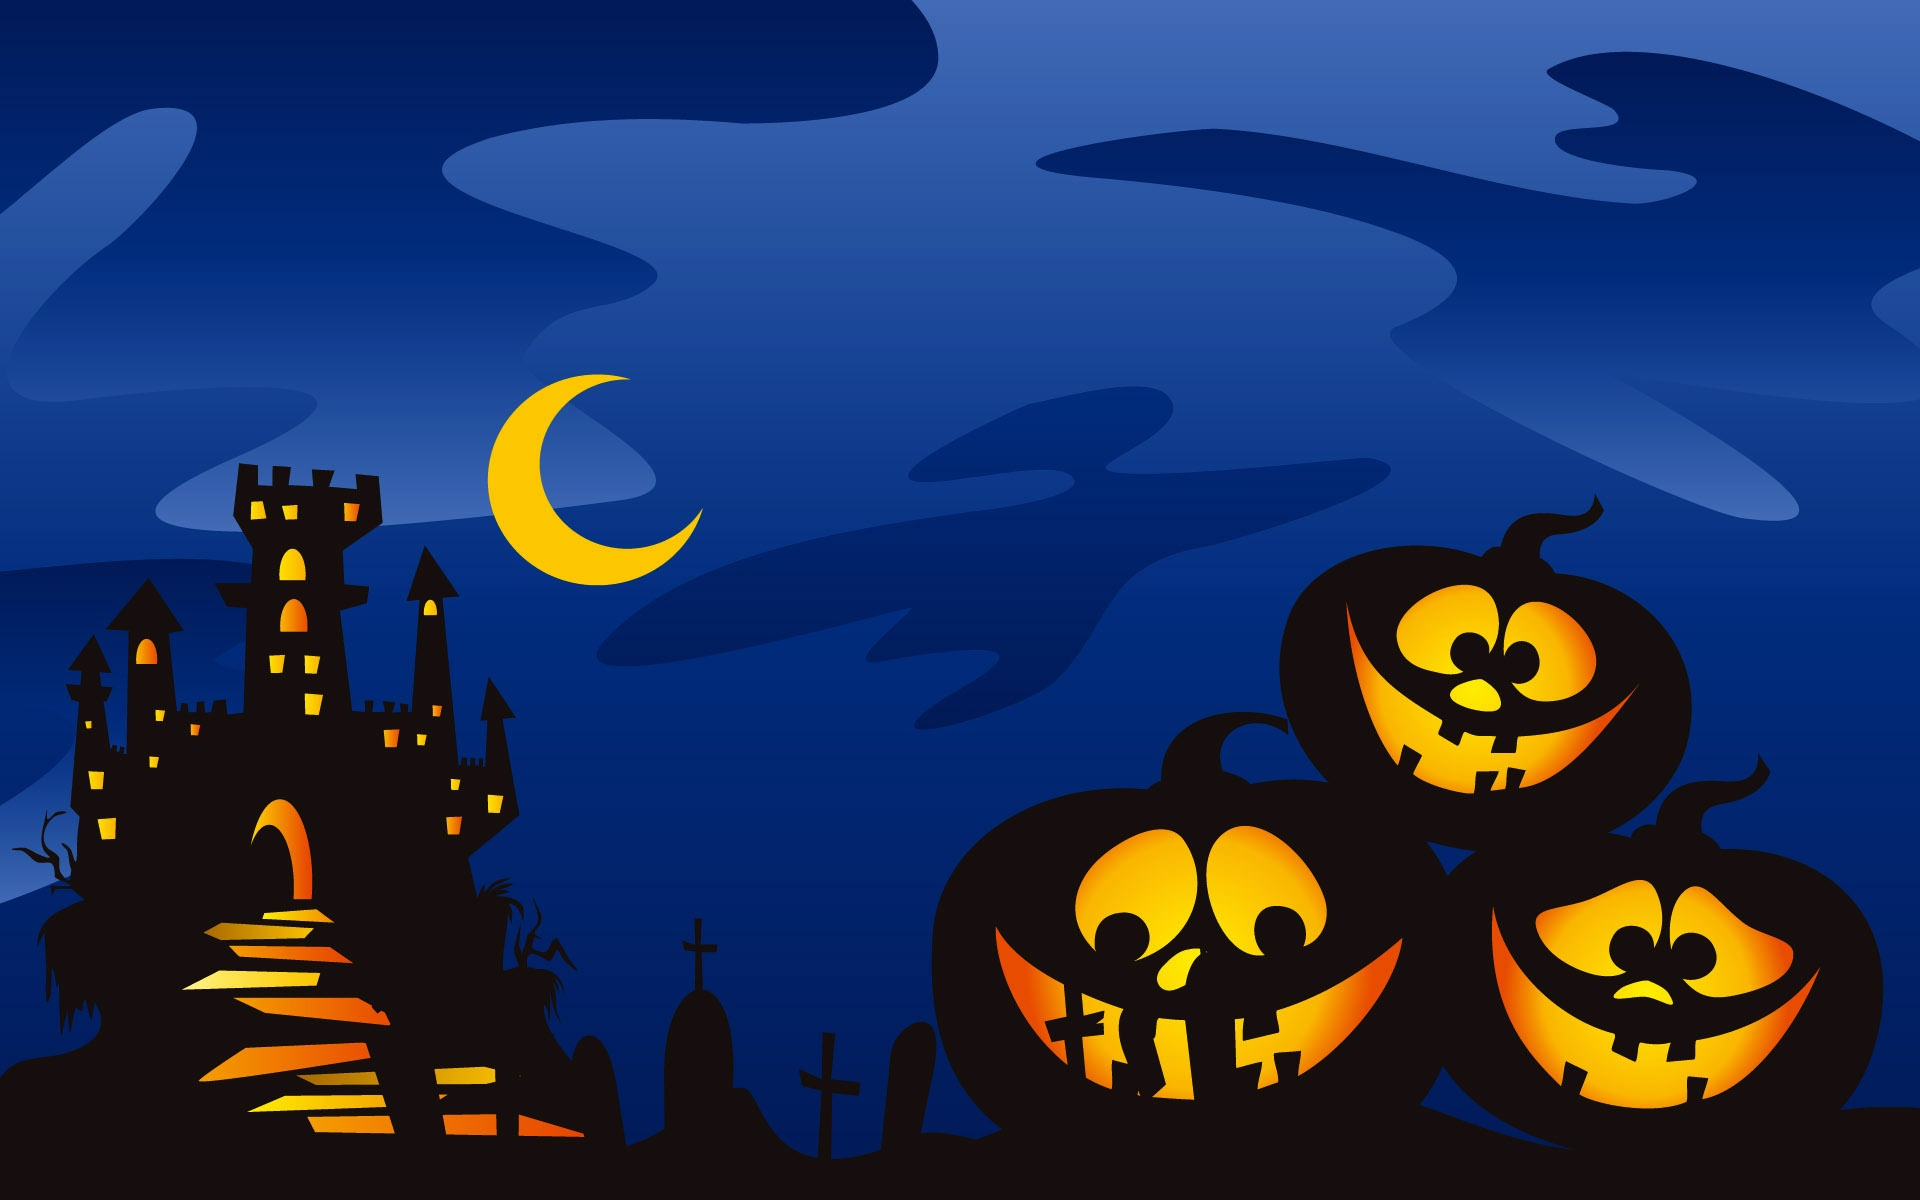 Cute Halloween Screensavers 21645 1920x1200 px